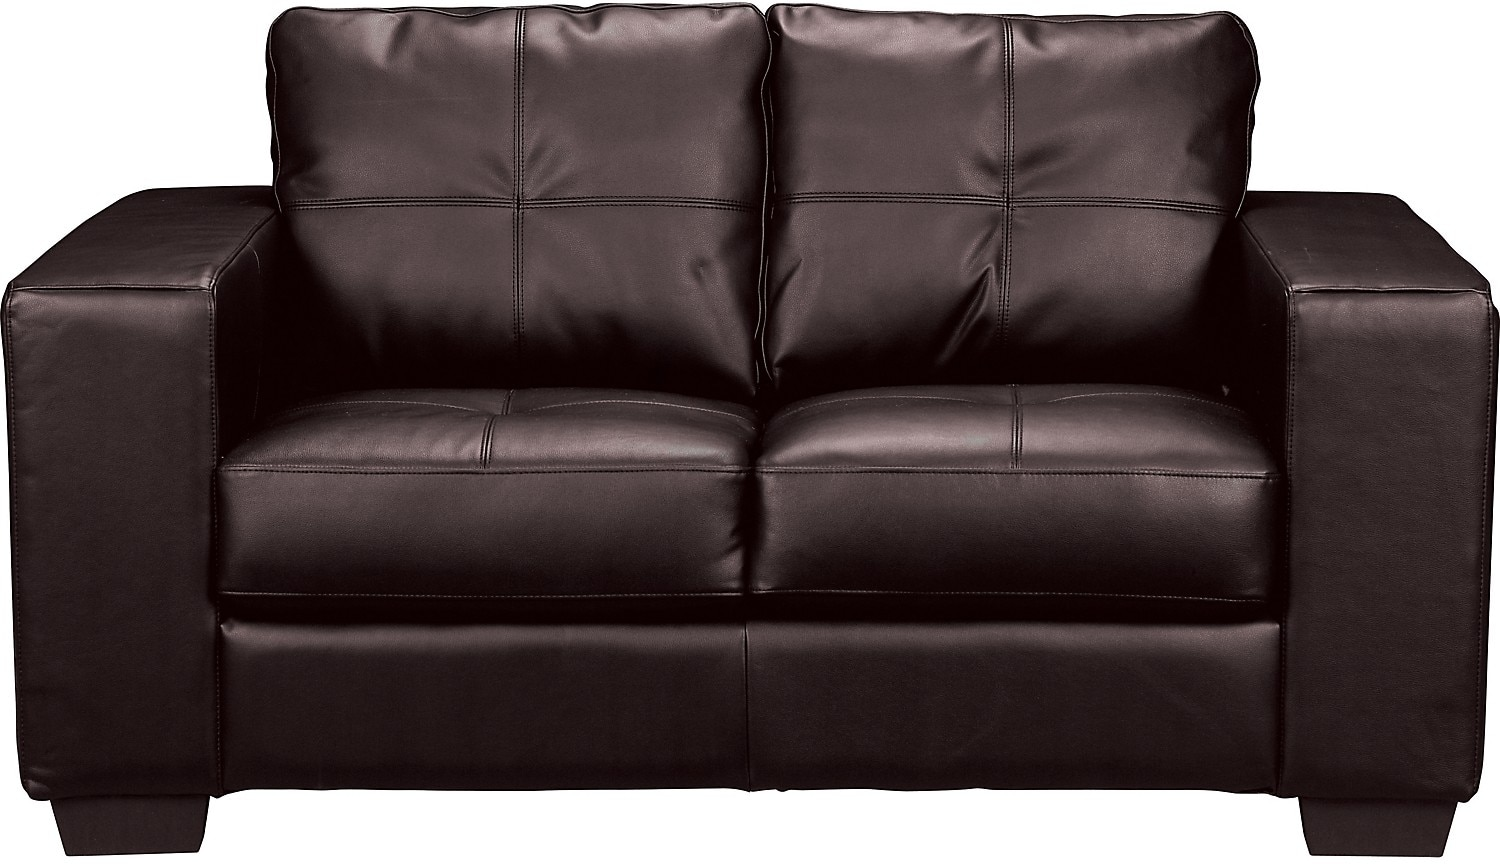 Living Room Furniture - Costa Brown Bonded Leather Loveseat